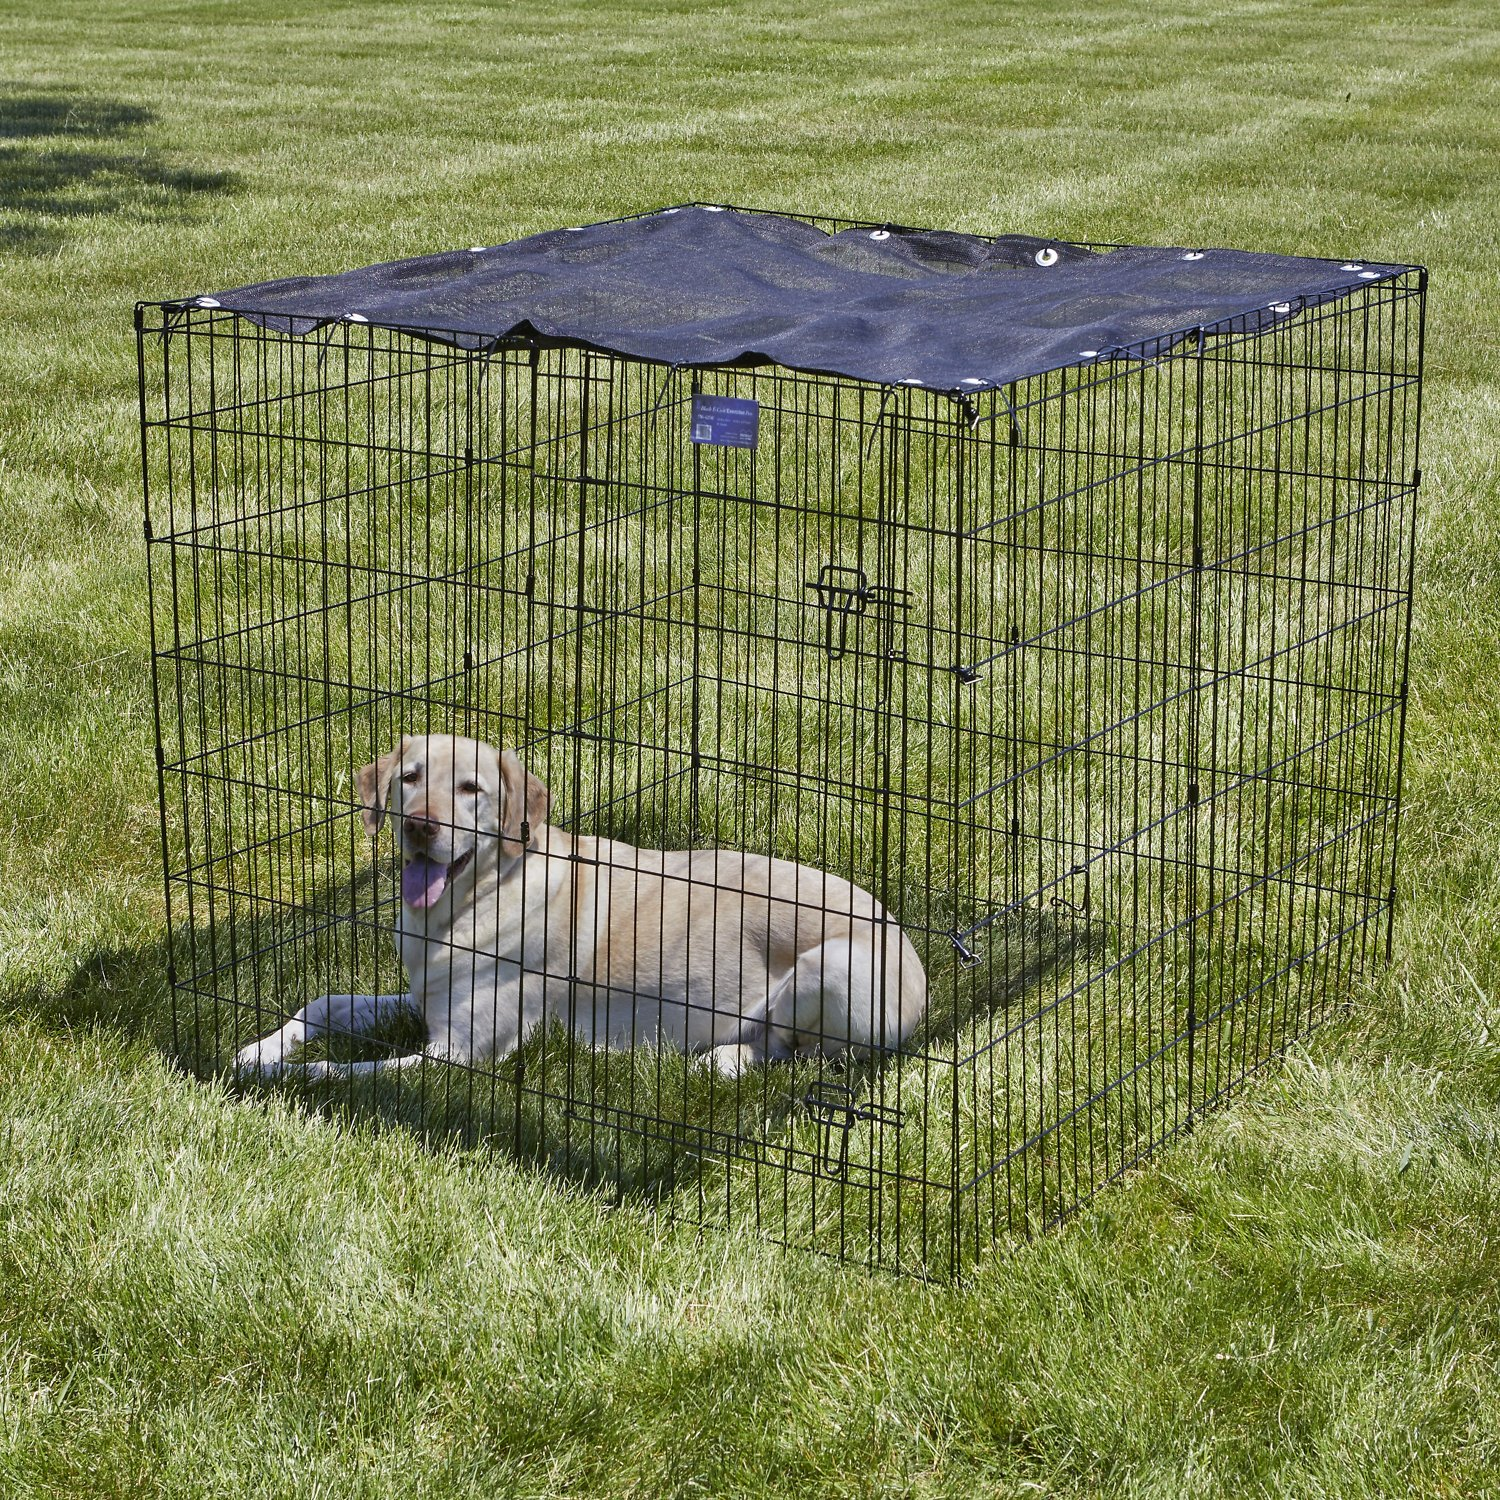 Midwest Exercise Pen Sunscreen Top Crate Sold Separately